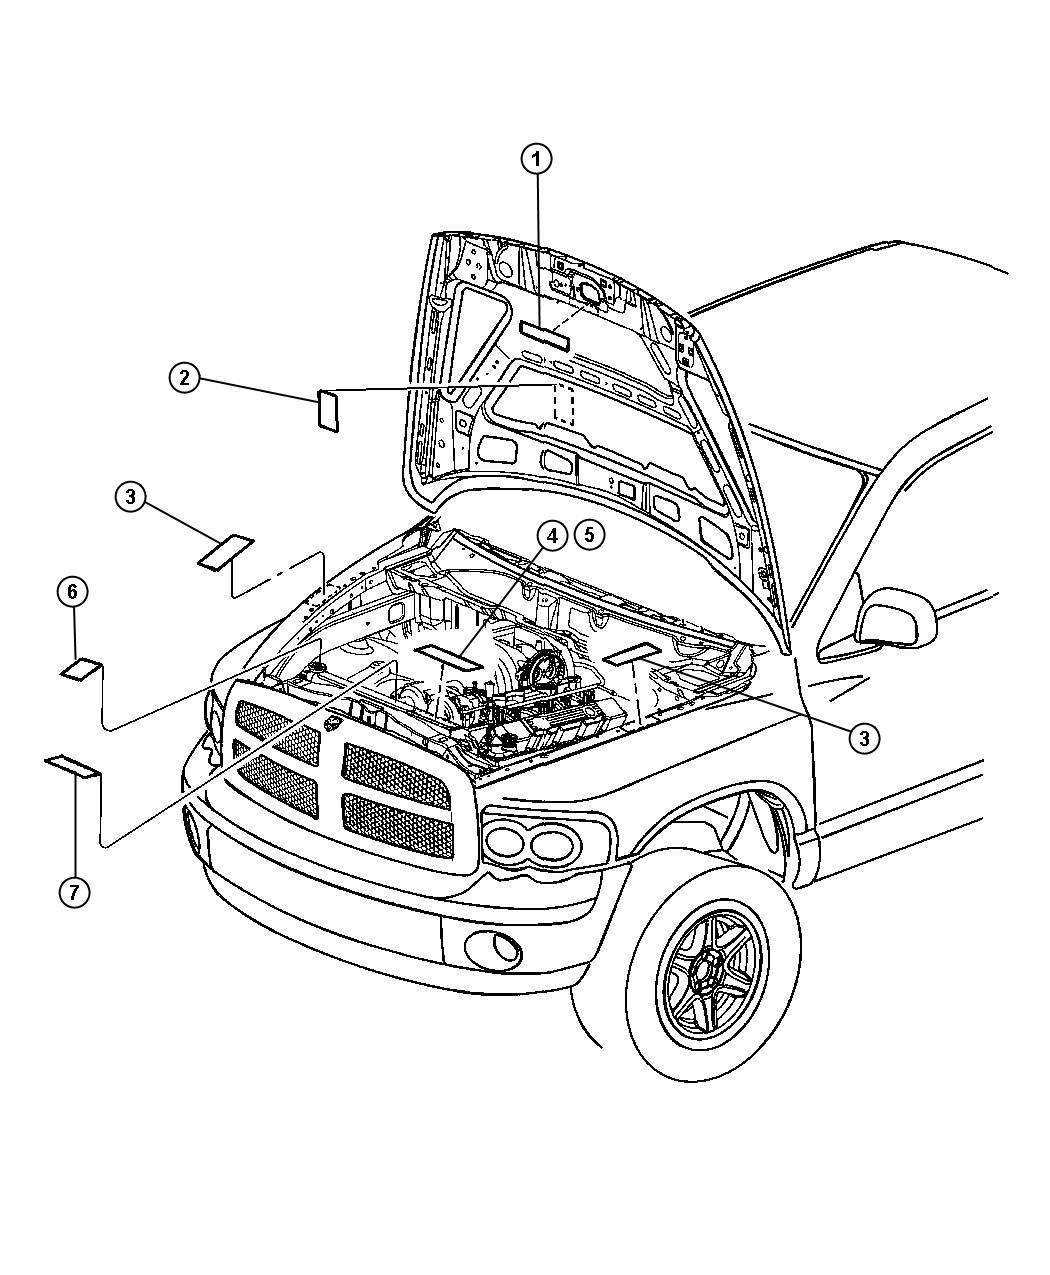 Dodge Ram 1500 Label. Air conditioning system. [engines